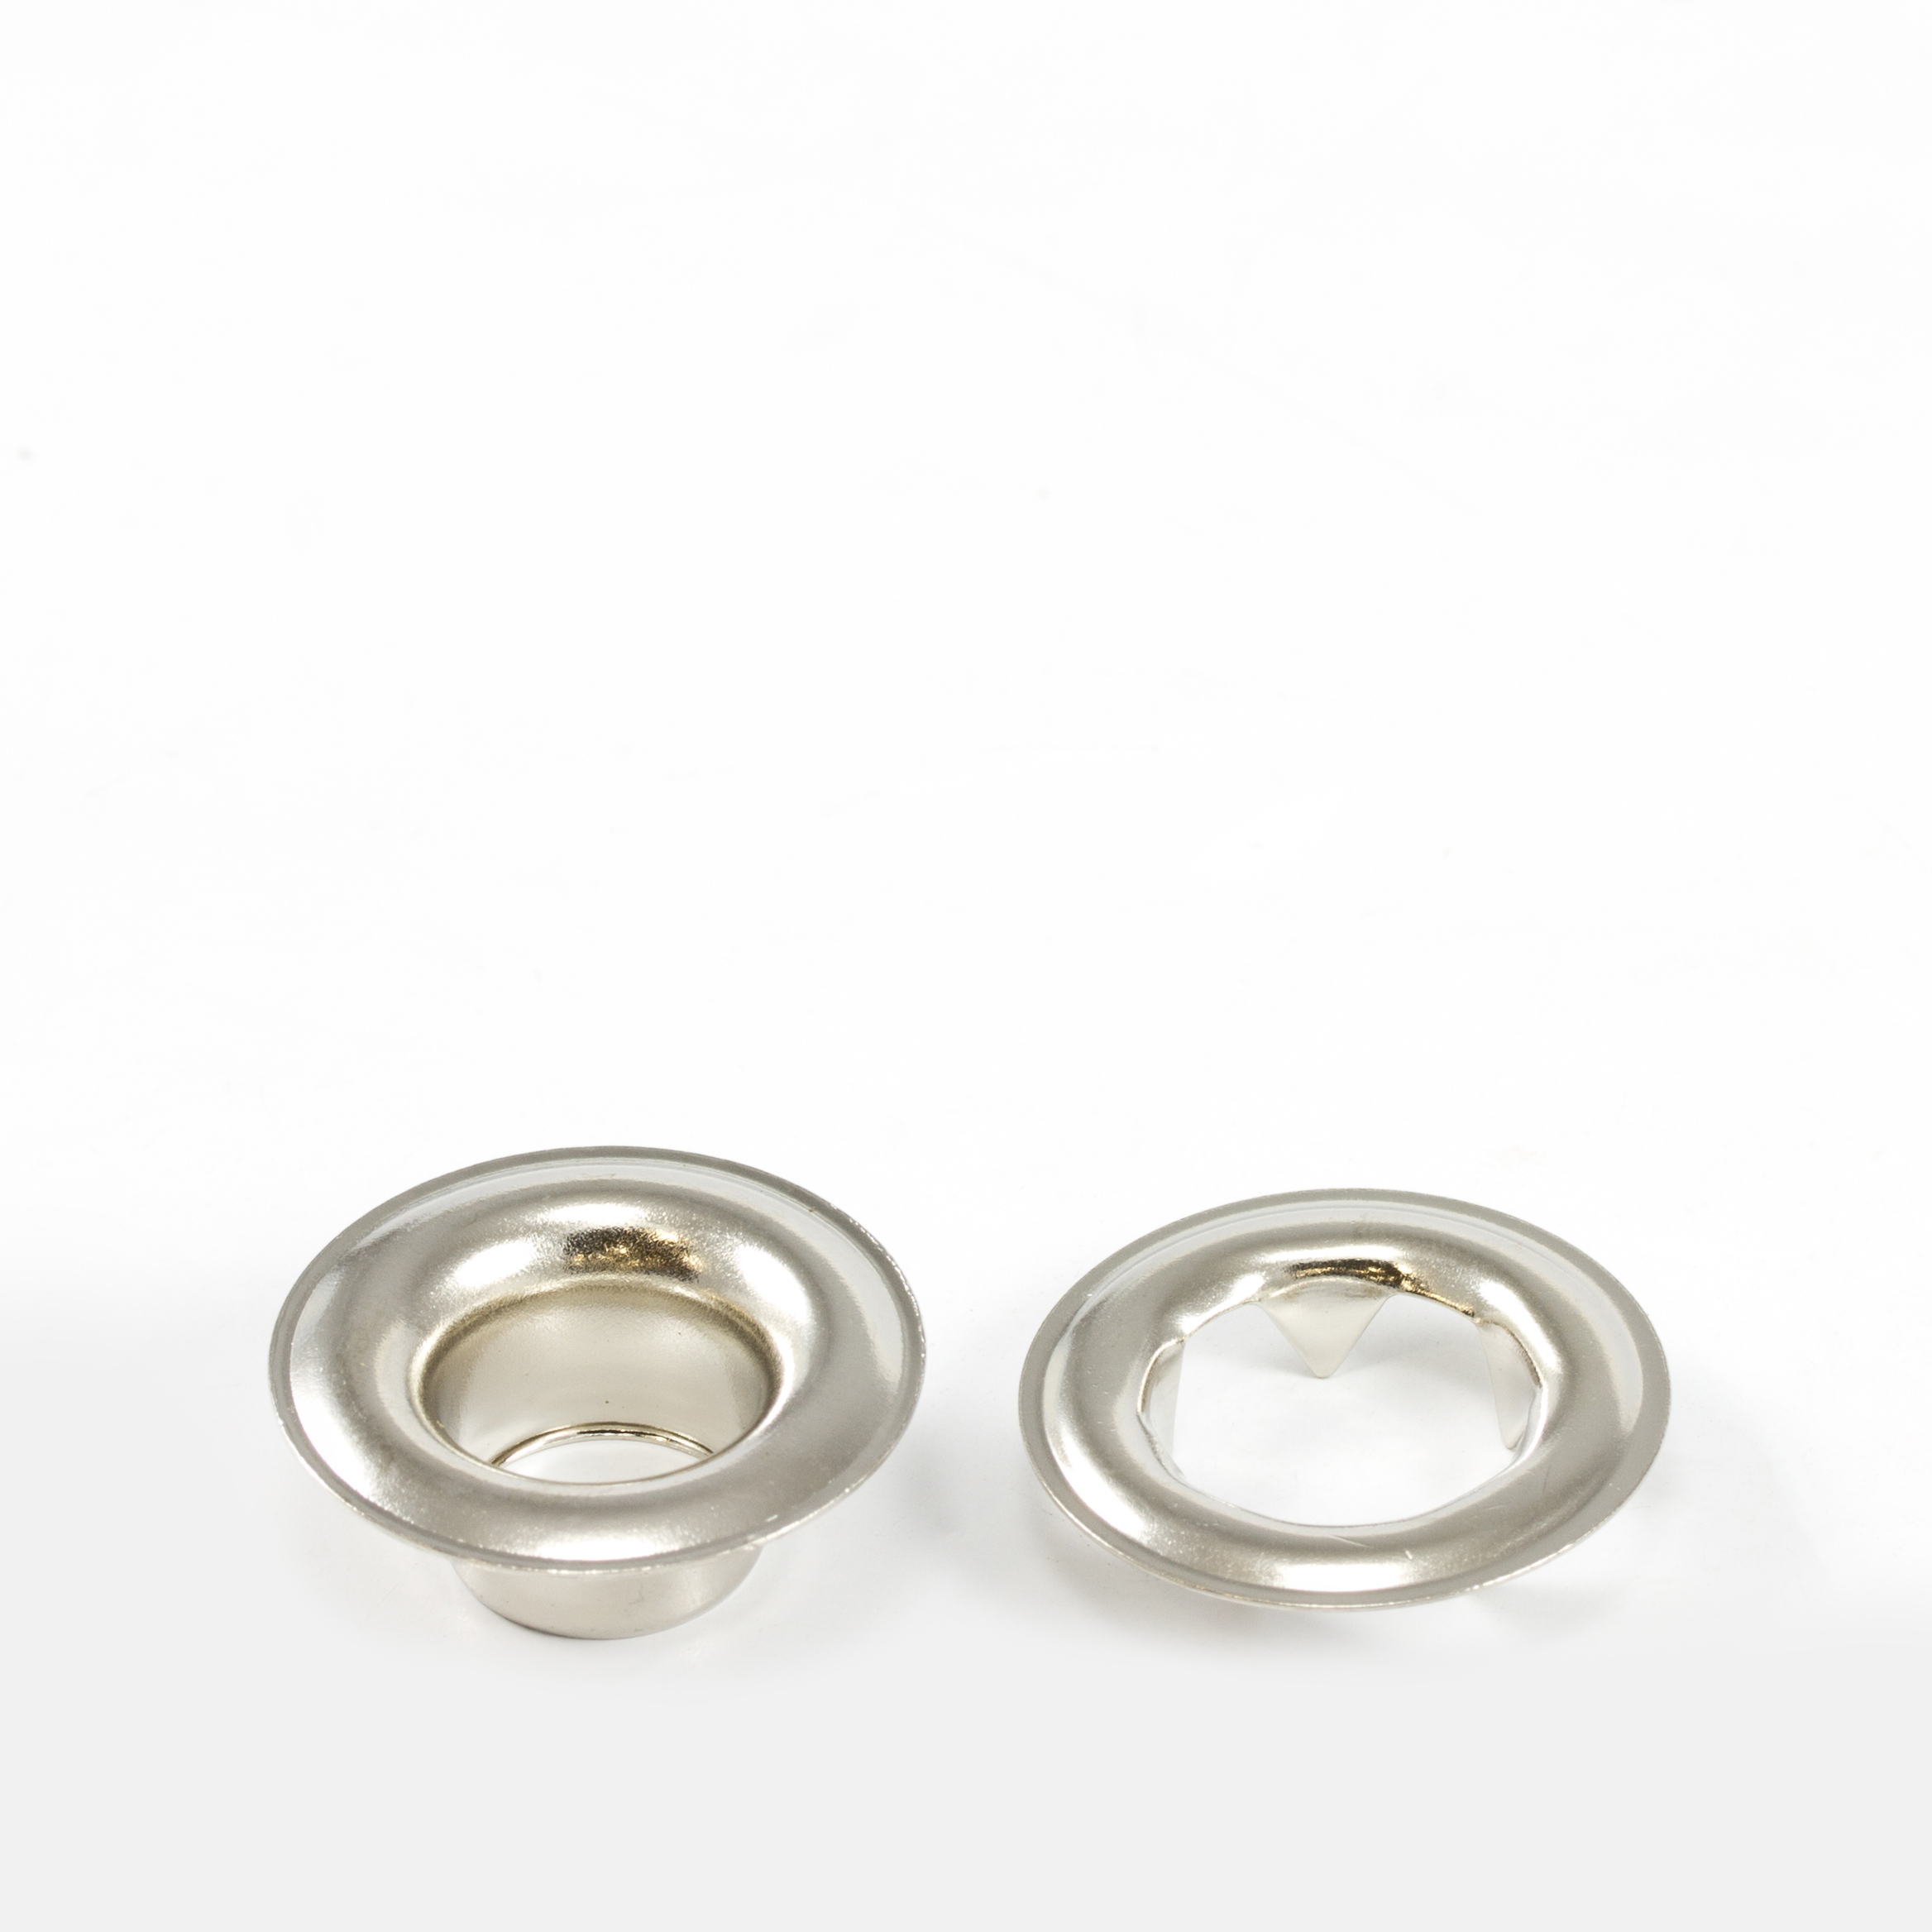 Thumbnail Grommet with Tooth Washer #4 Brass Nickel Plated 1/2 1